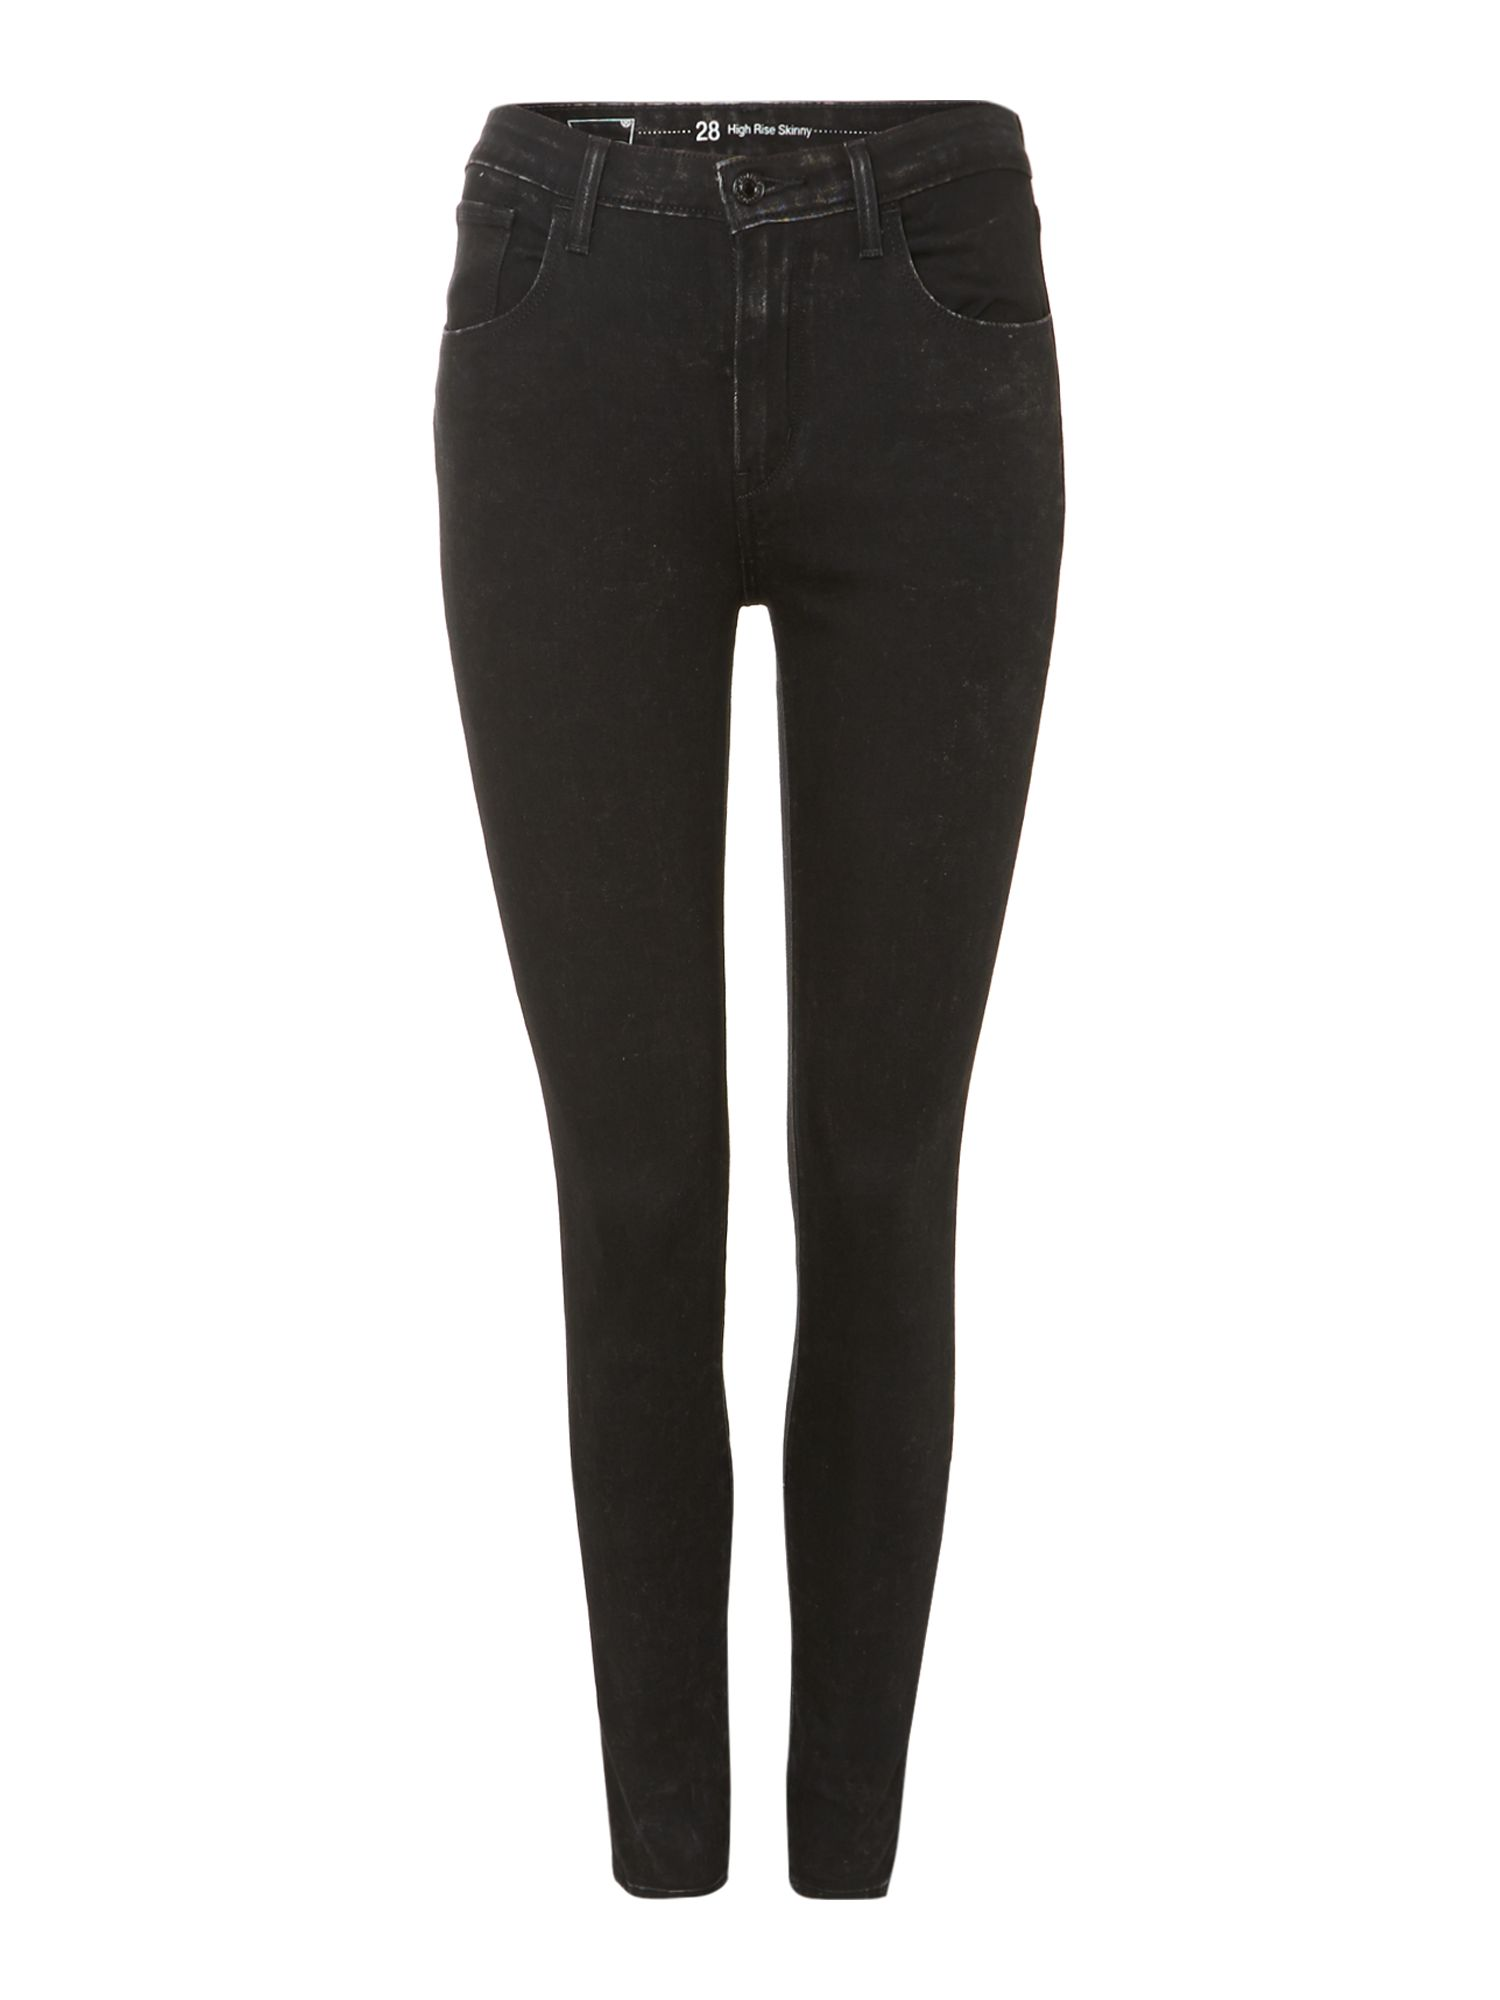 High rise super skinny jeans in gravel